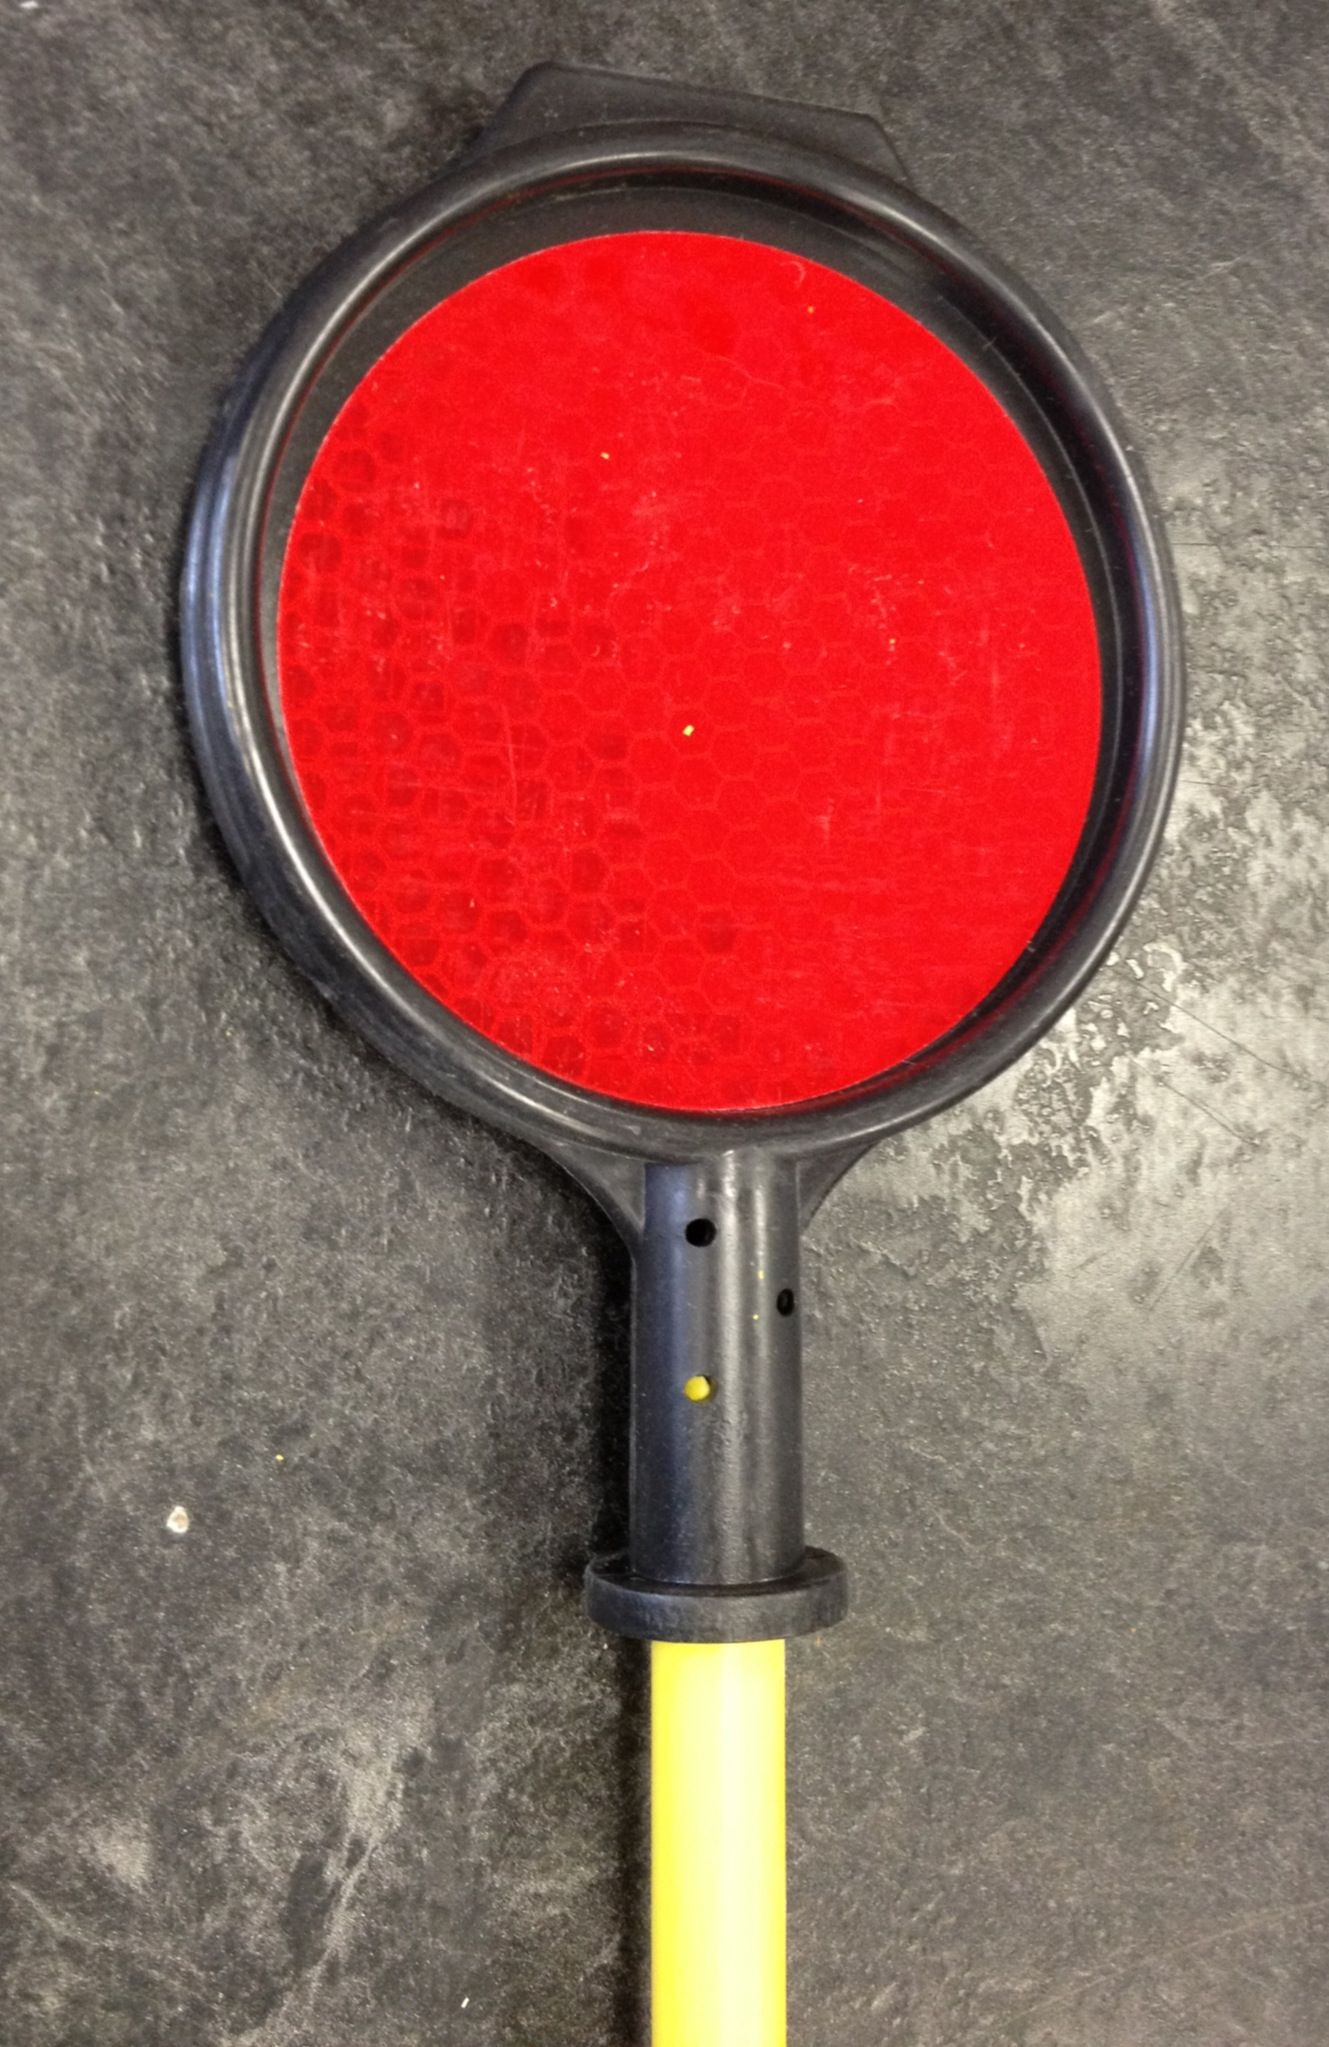 Red Reflective Driveway Marker